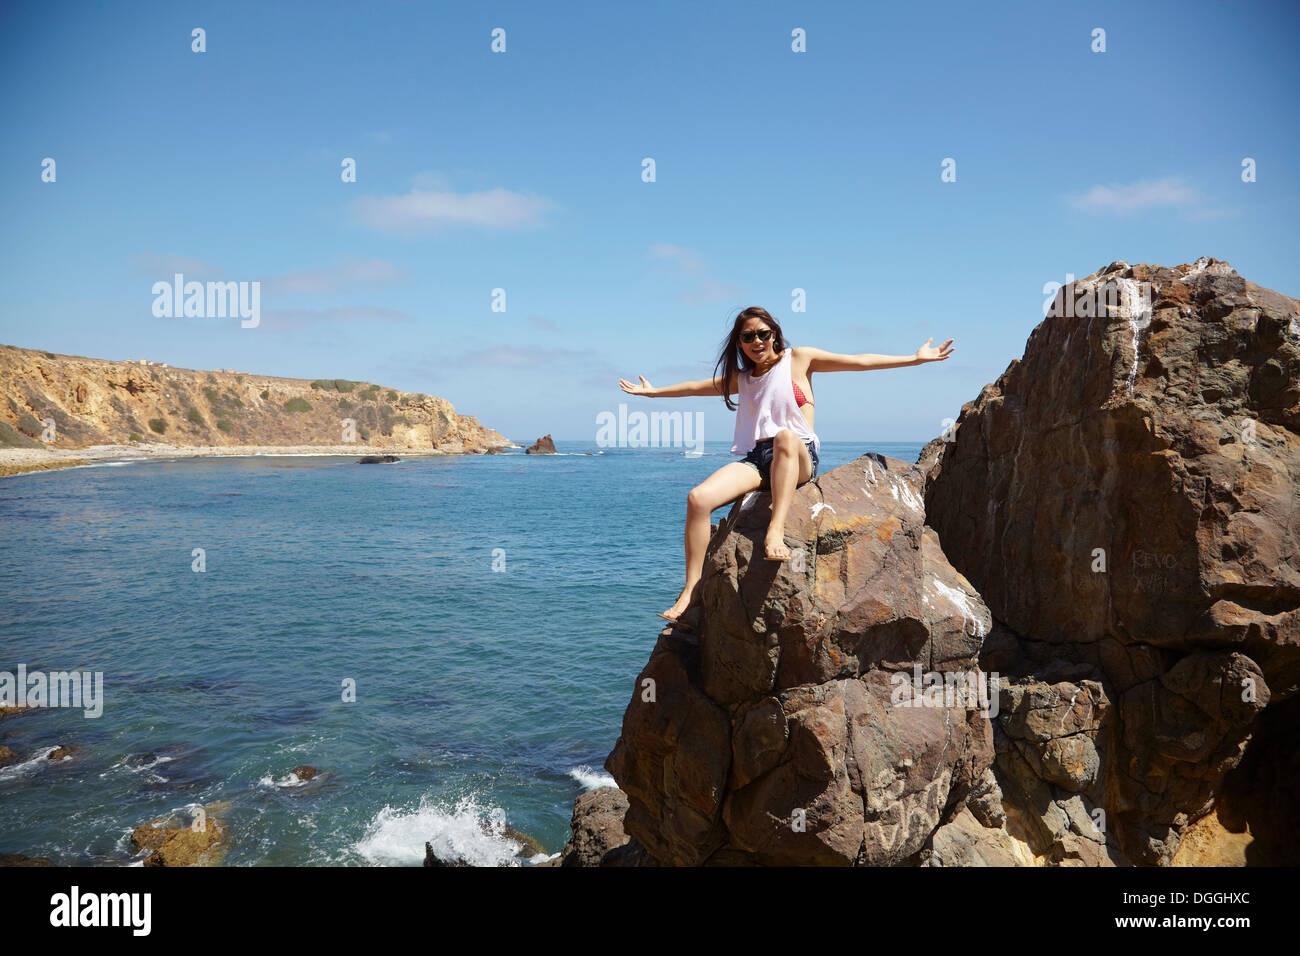 Young woman sitting on rocks, Palos Verdes, California, USA - Stock Image